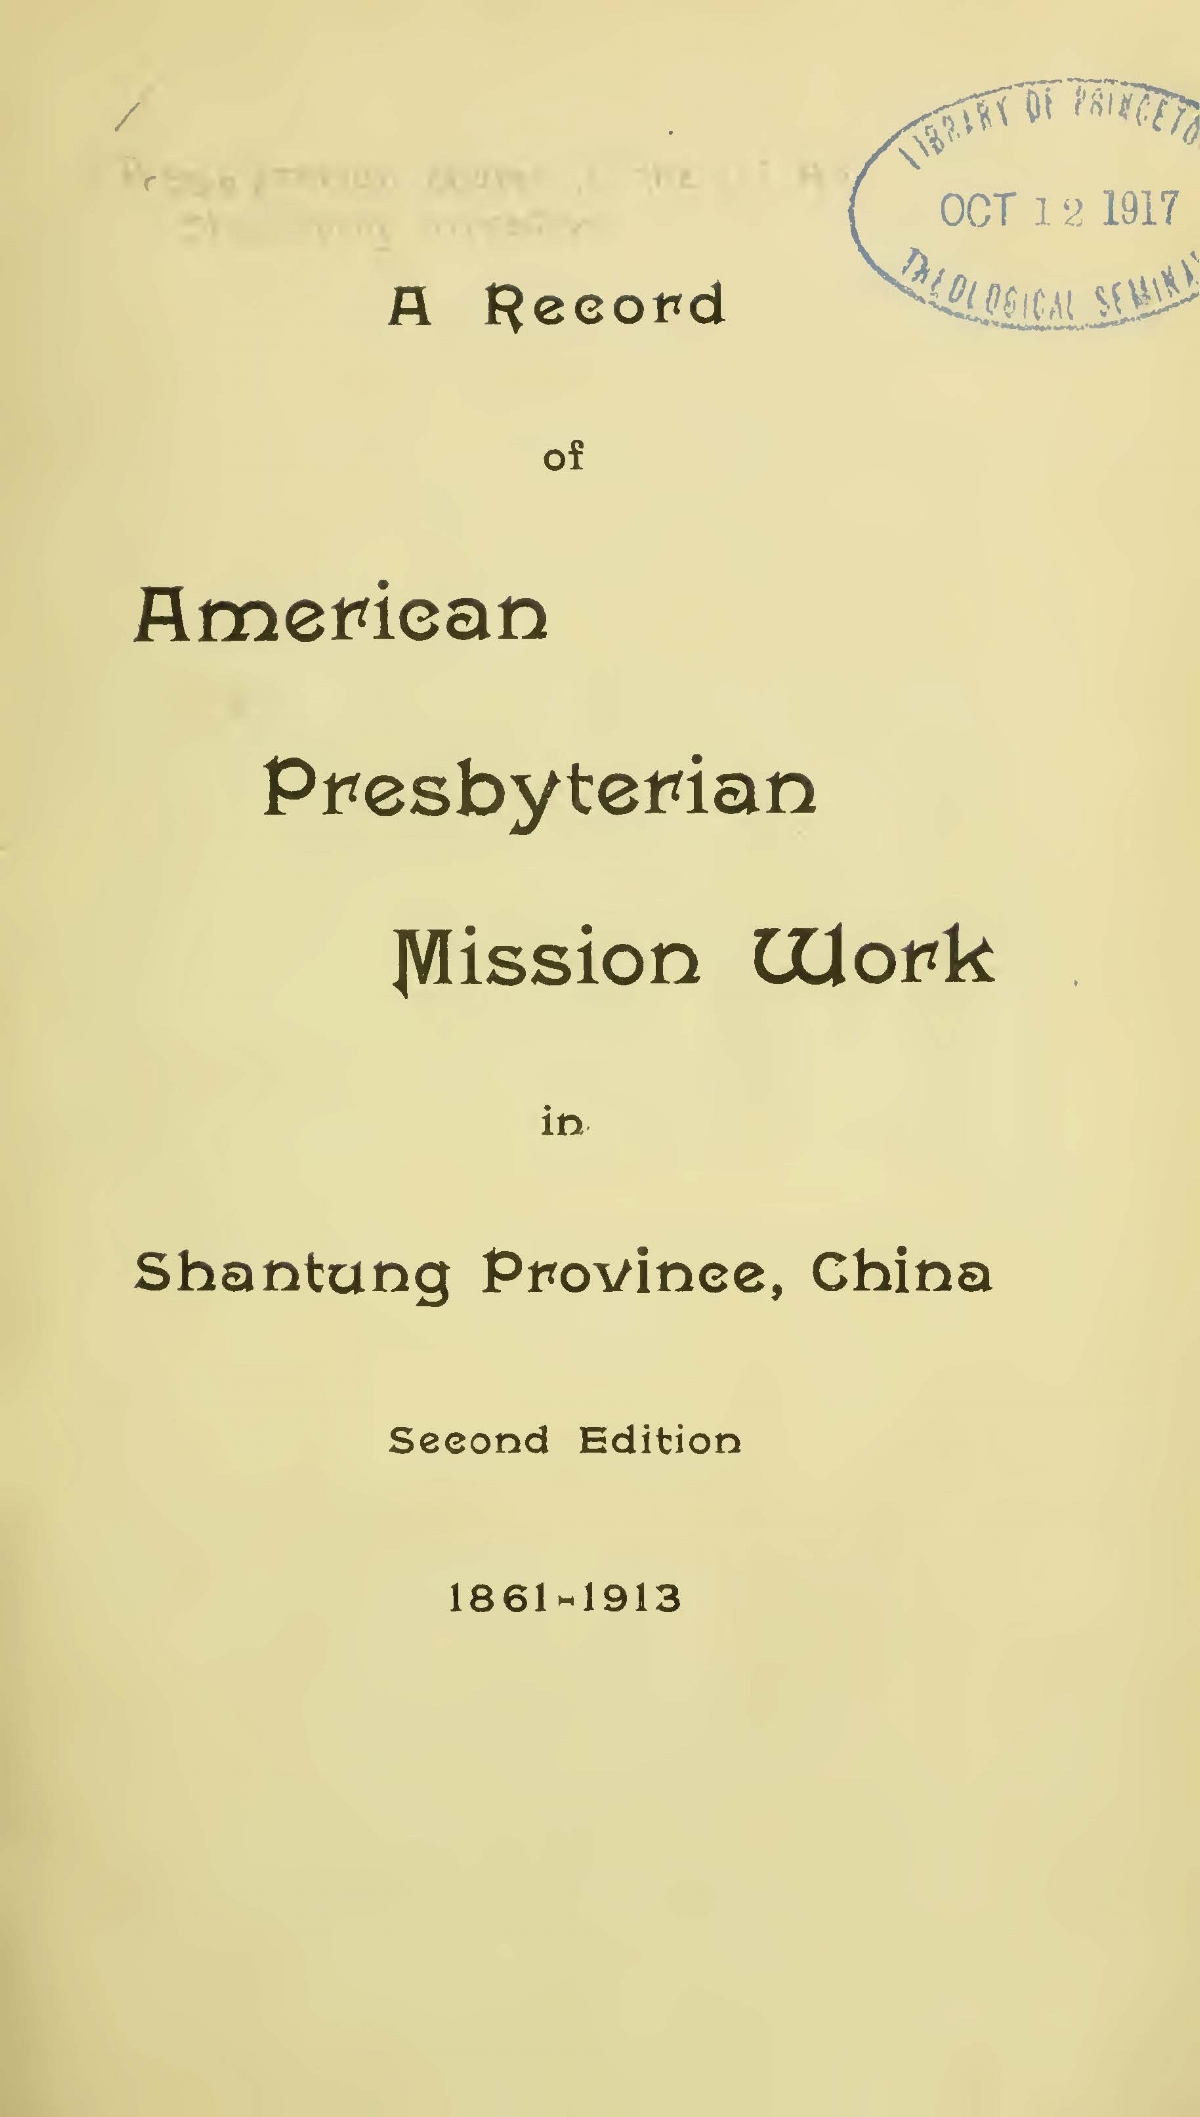 Corbett, Hunter, A Record of American Presbyterian Mission Work in Shantung Province, China, 1861-1913 Title Page.jpg